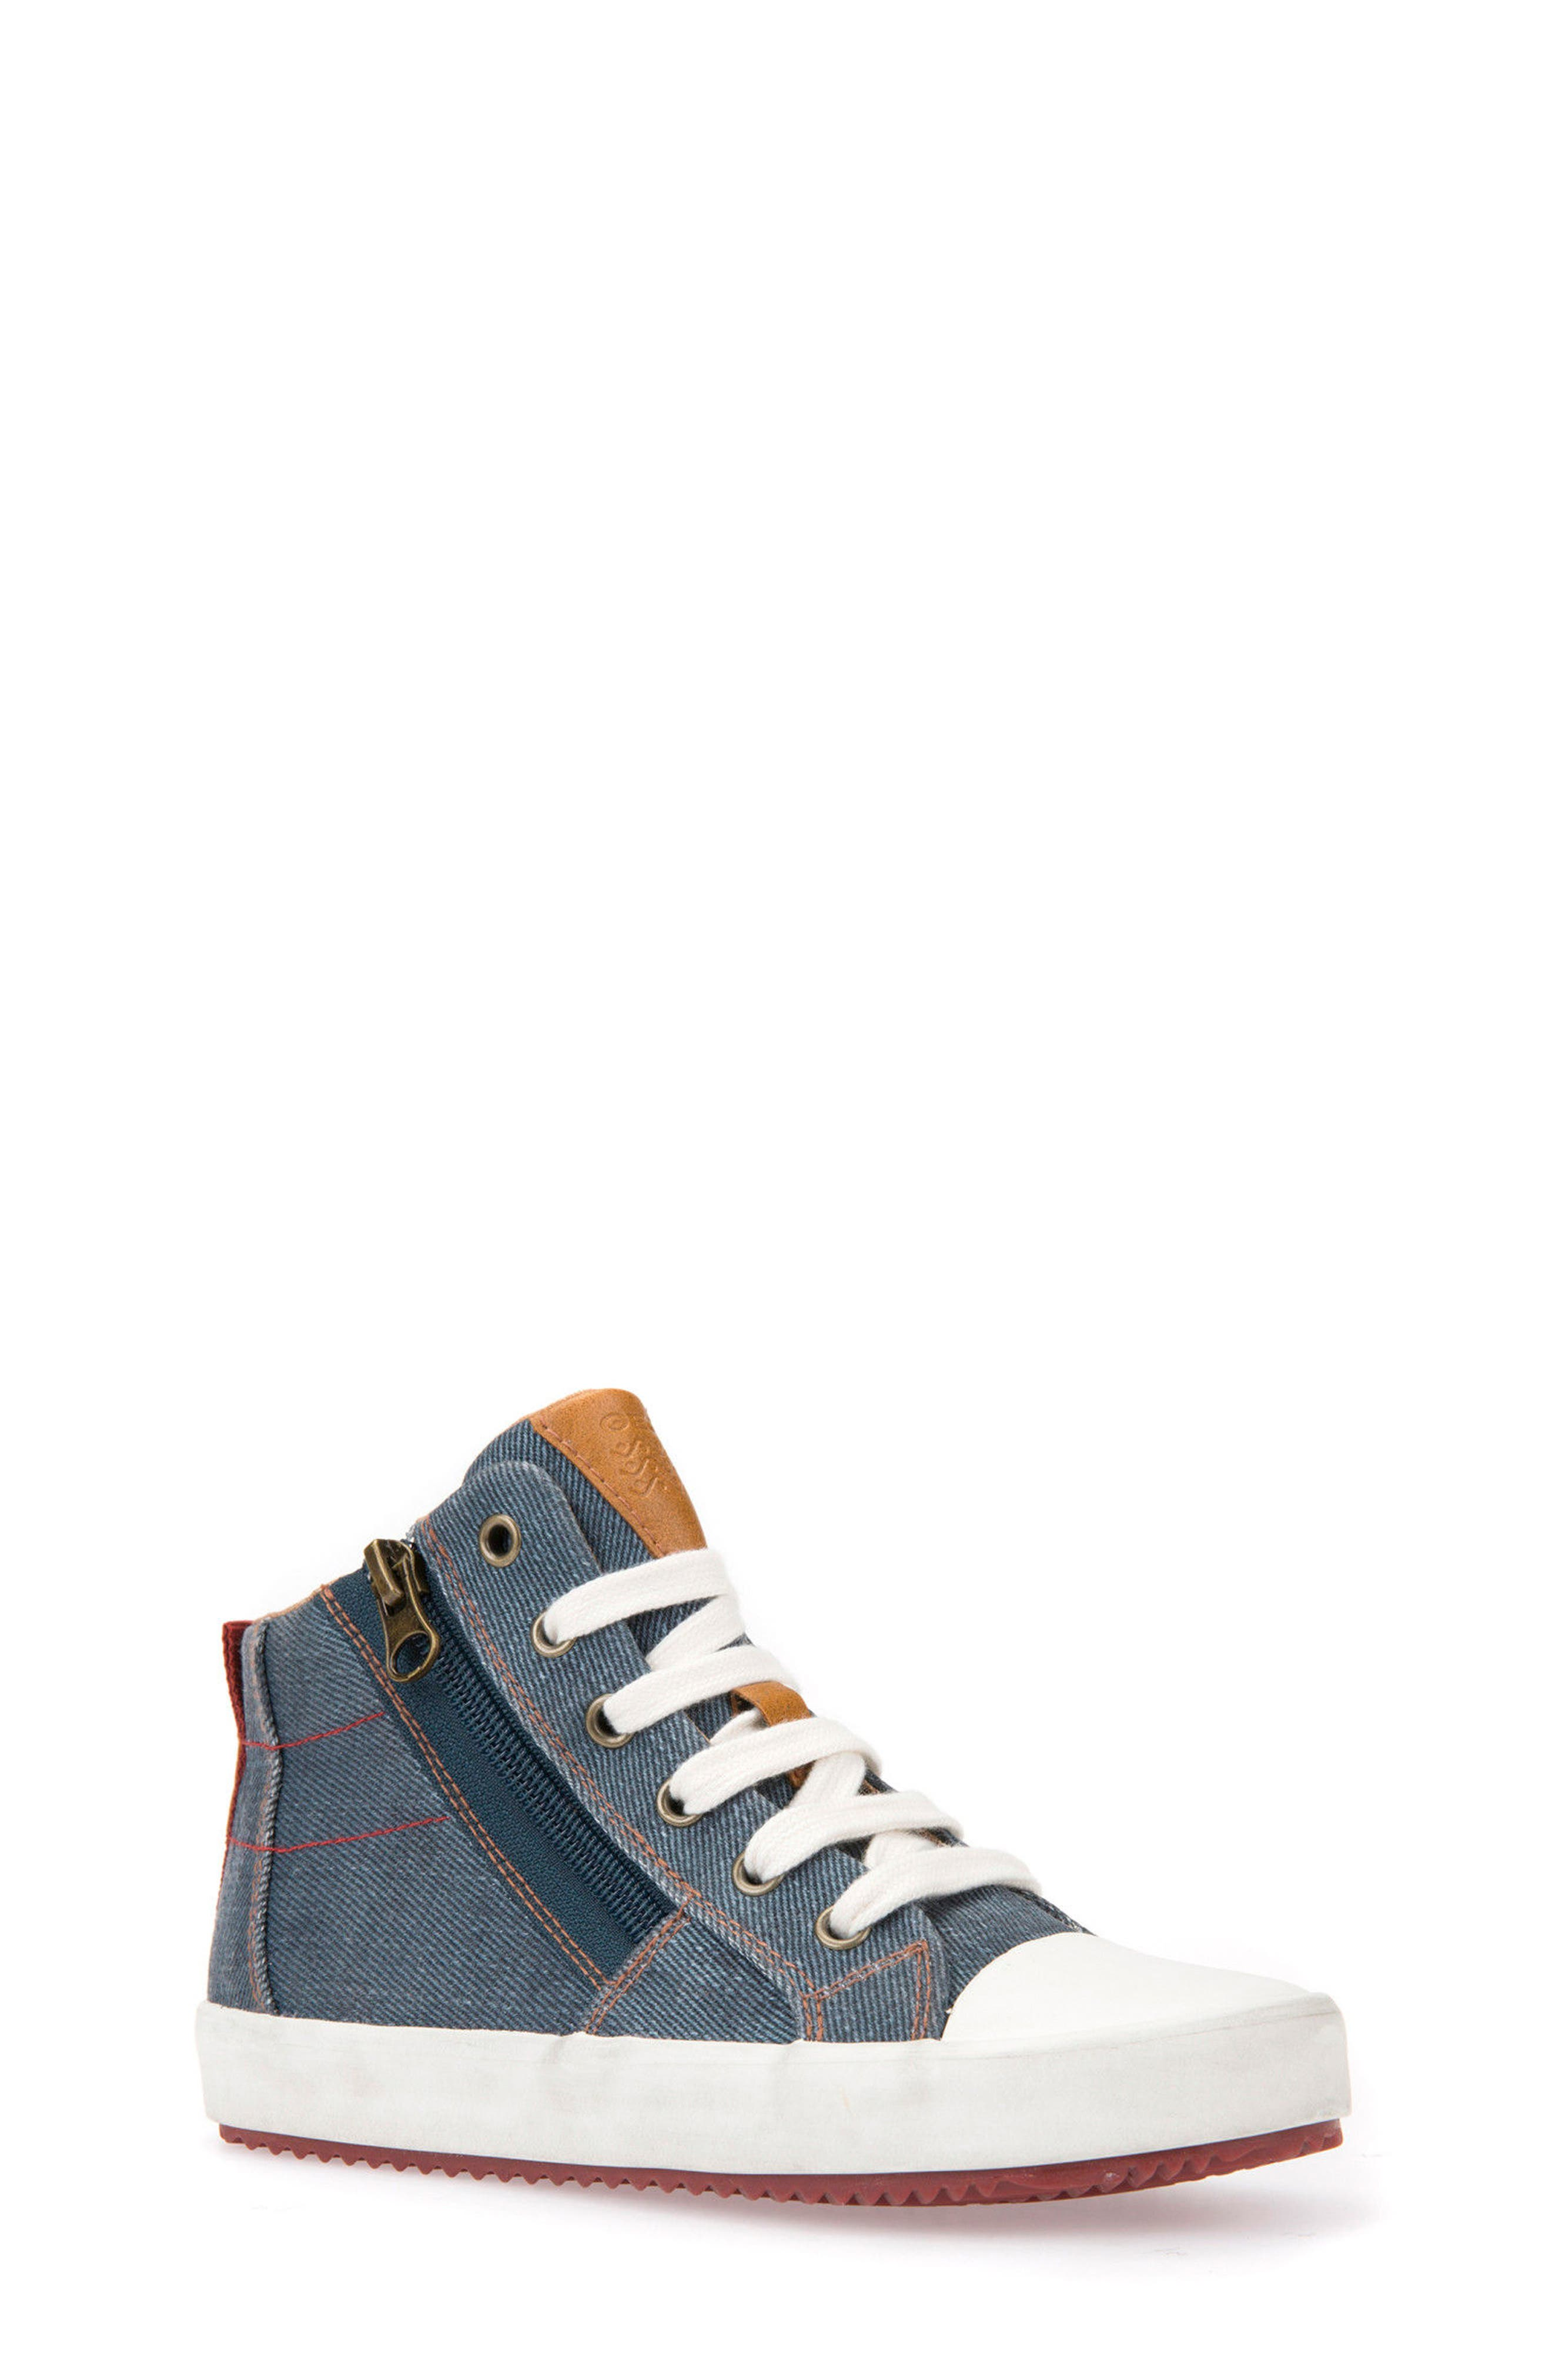 Alonisso High Top Sneaker,                             Main thumbnail 1, color,                             426